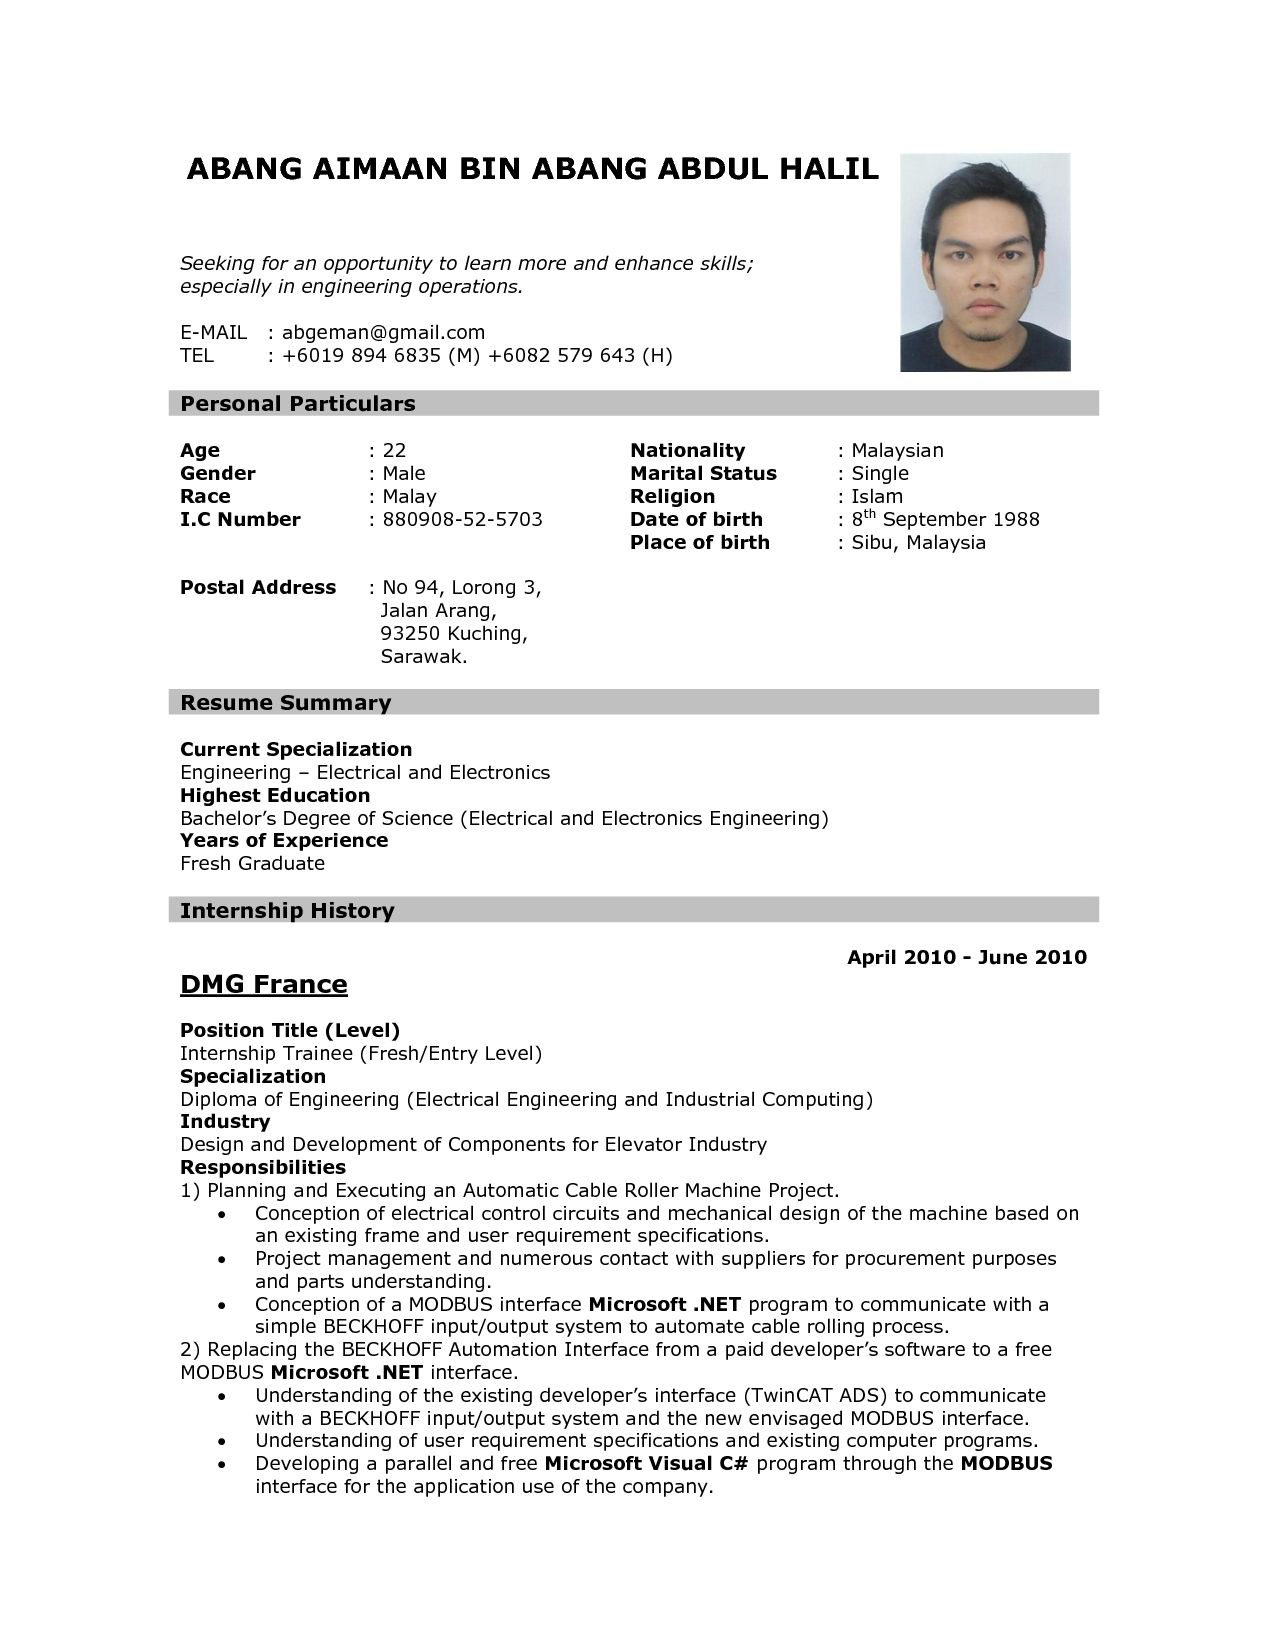 Resume Resume Format Job Download format of resume for job application to download data sample the applying